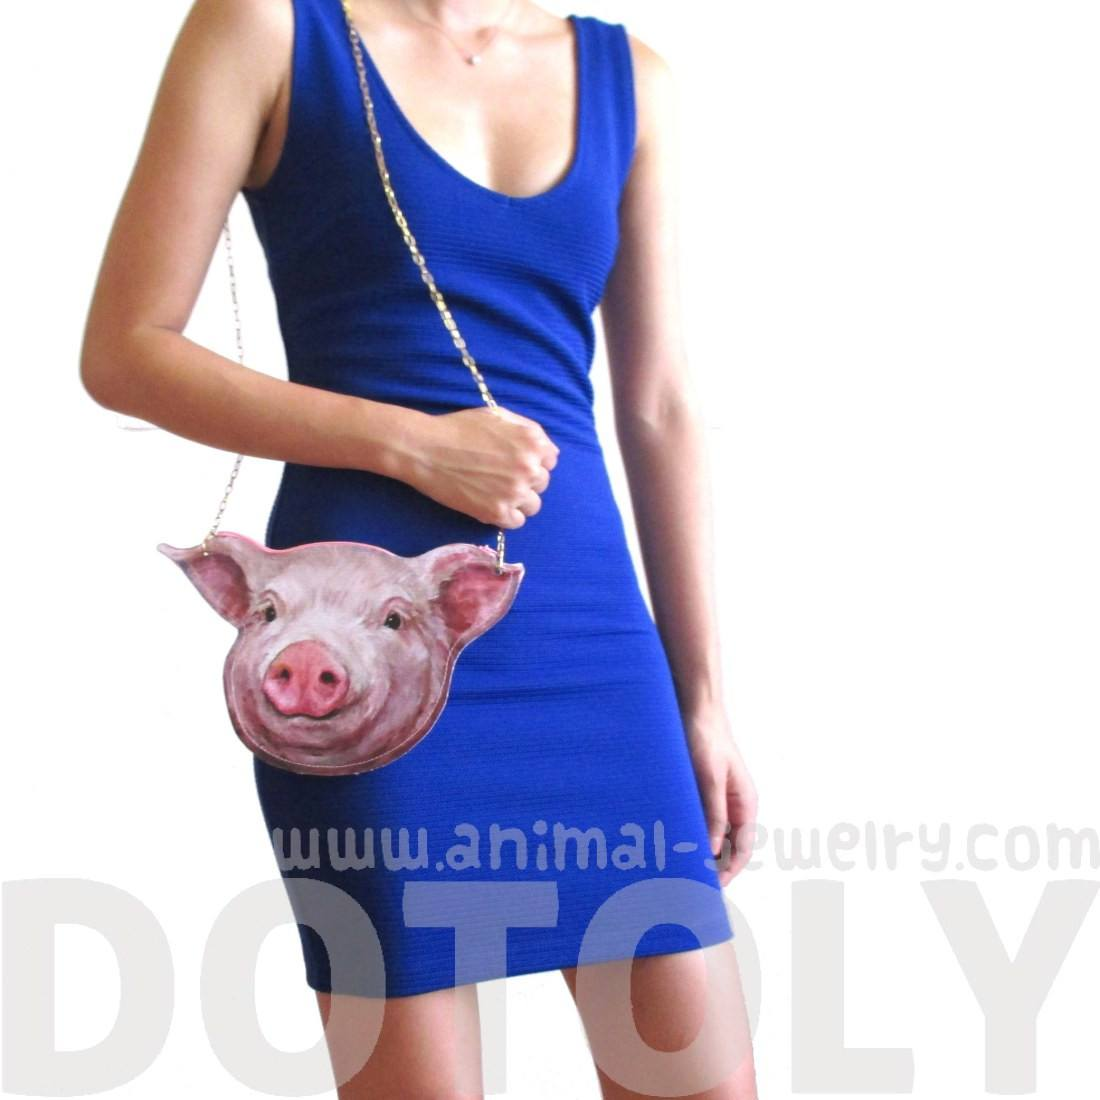 Piglet Pig Face Shaped Vinyl Animal Themed xBody Bag